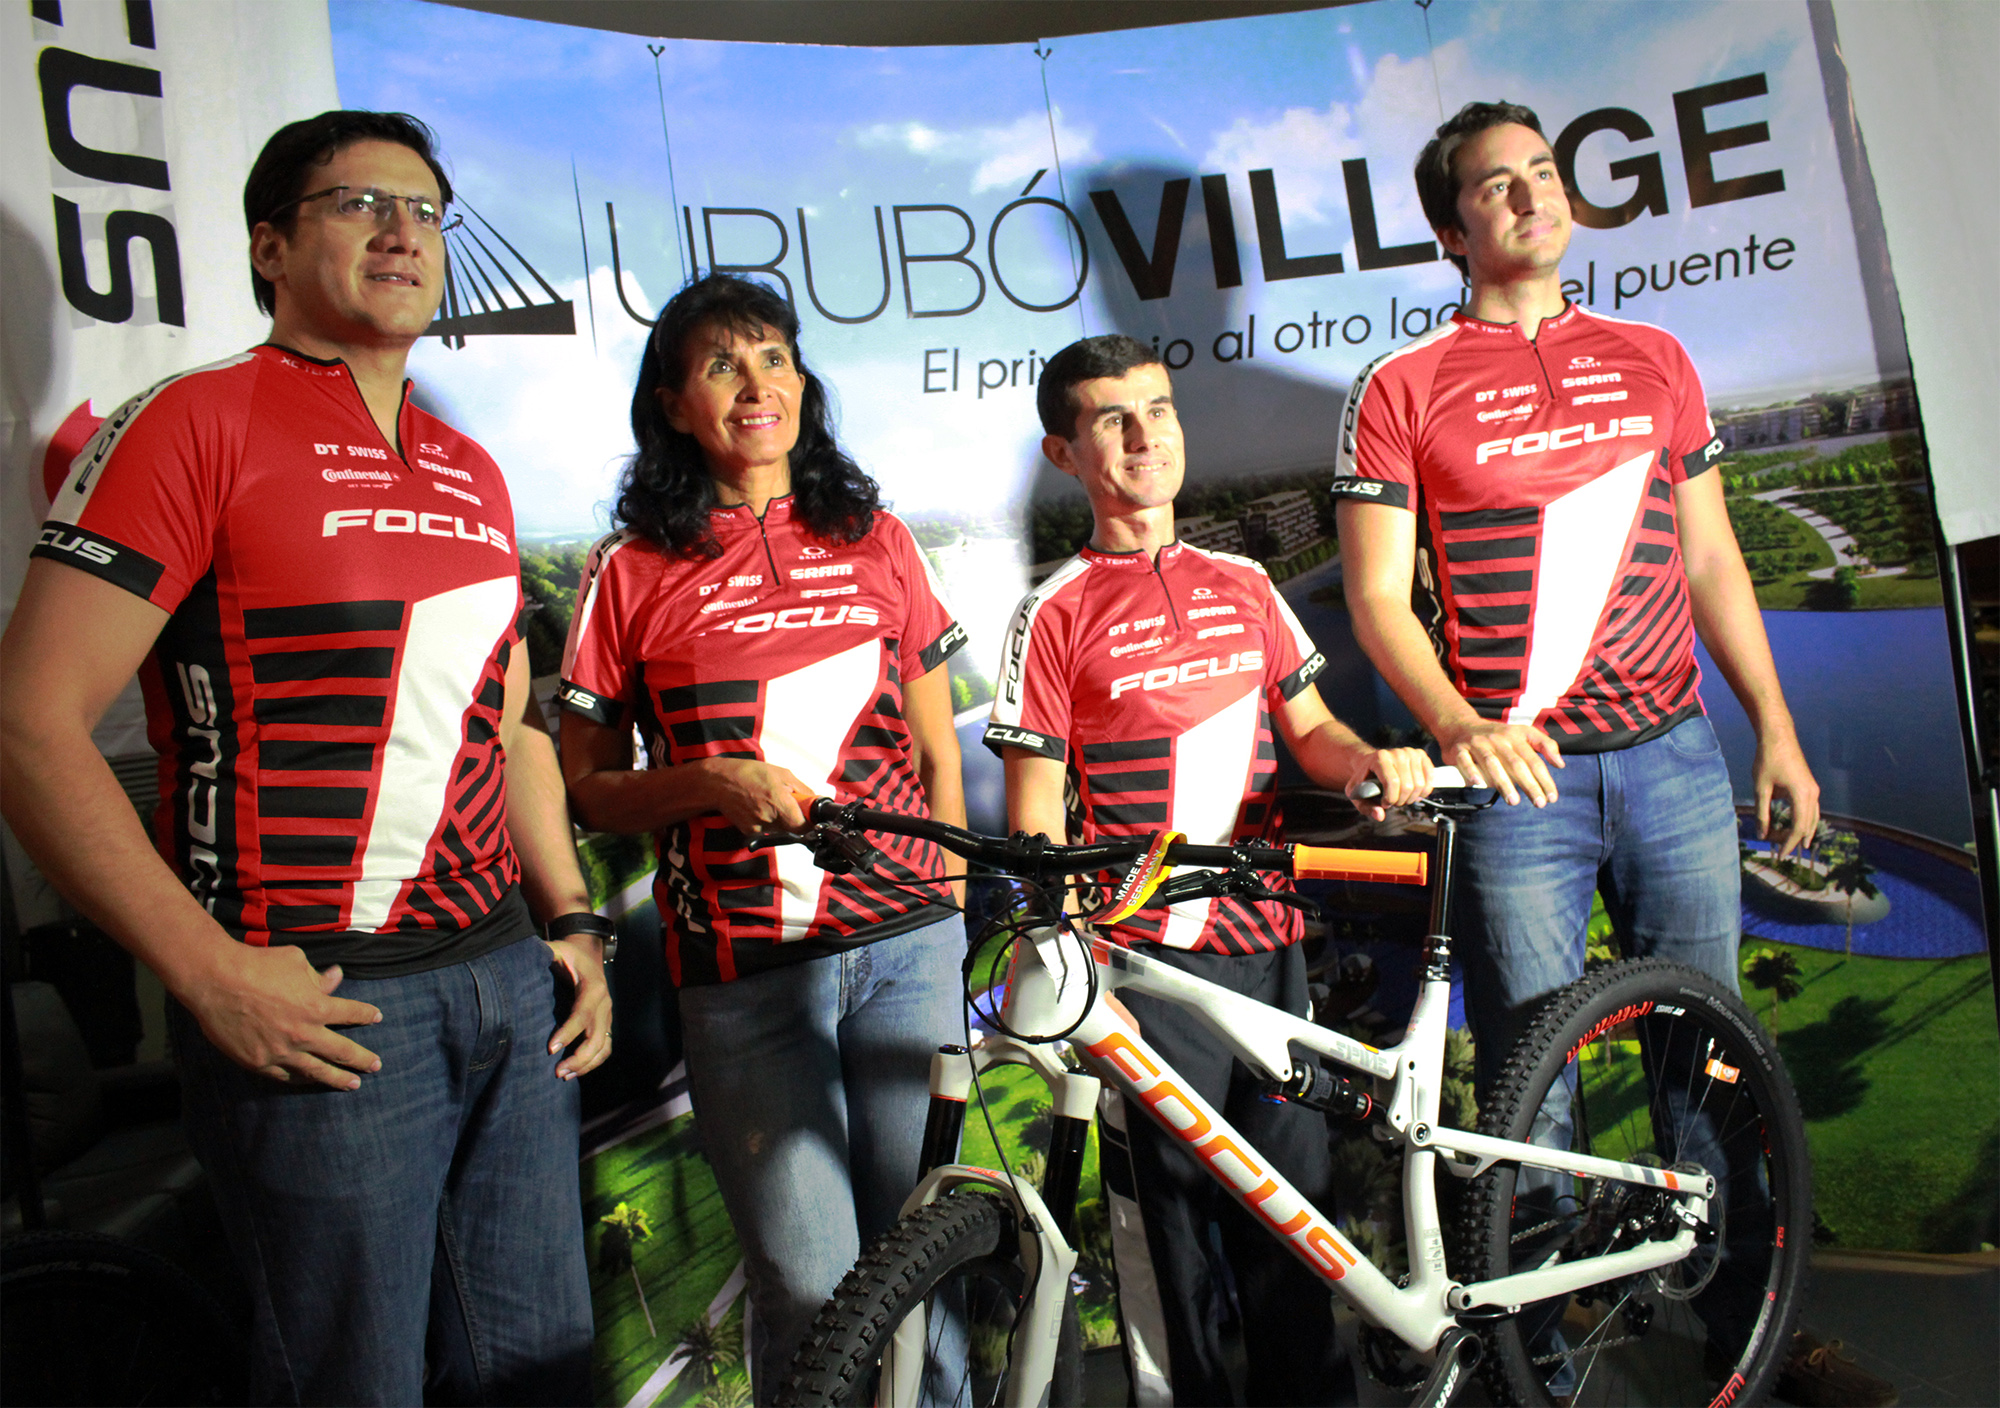 Urubo Vilage - Focus Bike (1)